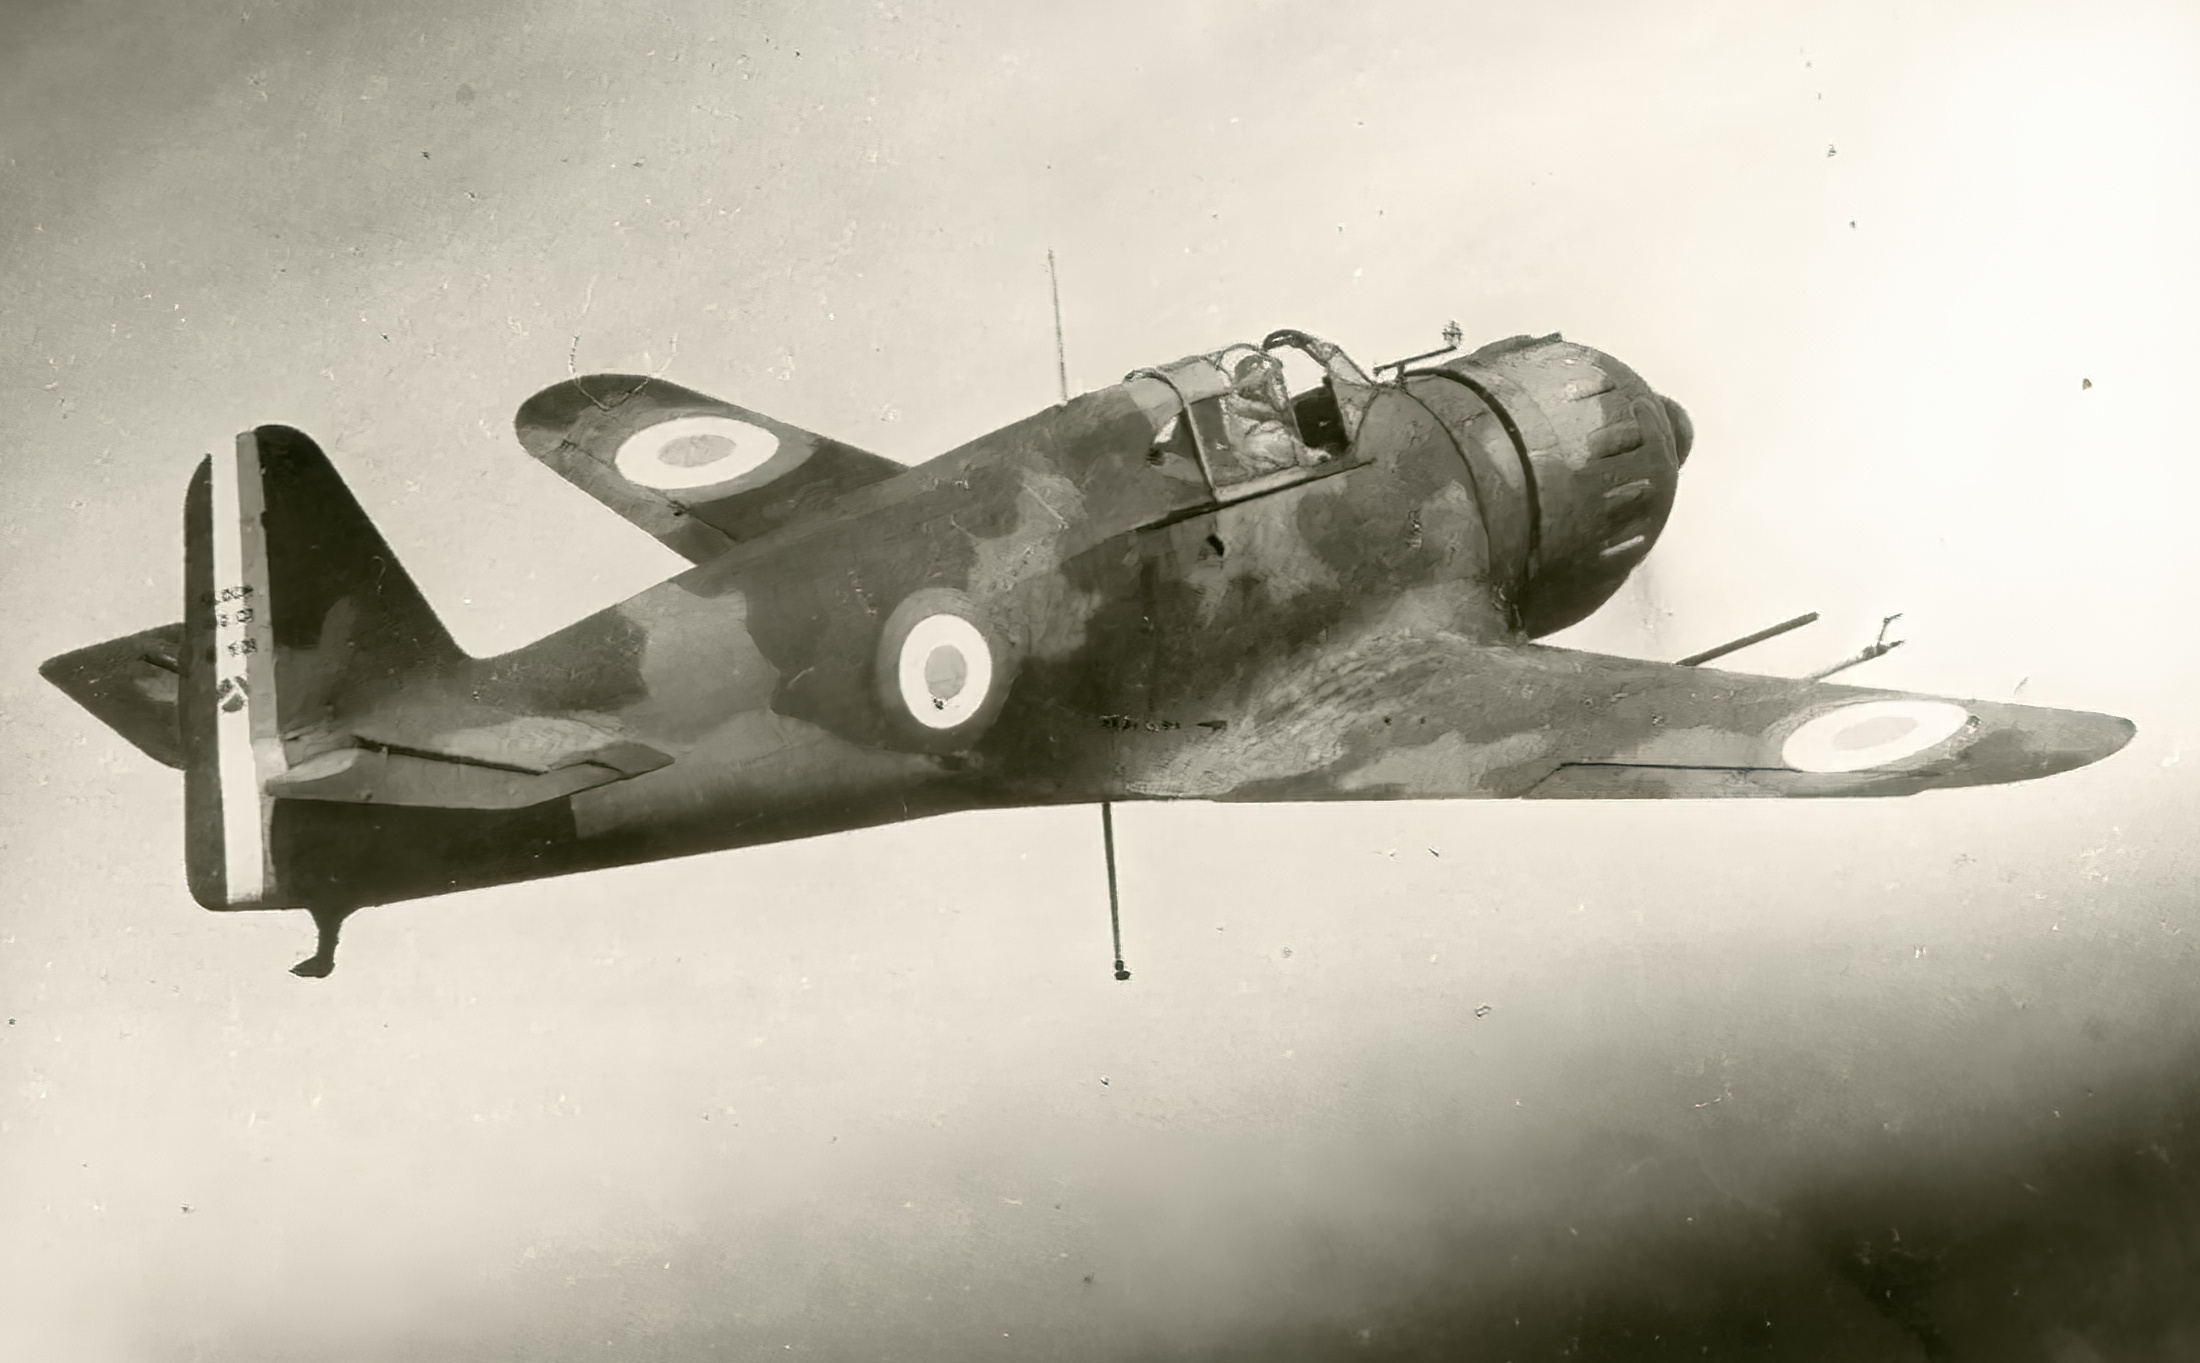 French Airforce Bloch MB 152 No501 Battle of France May 1940 web 01